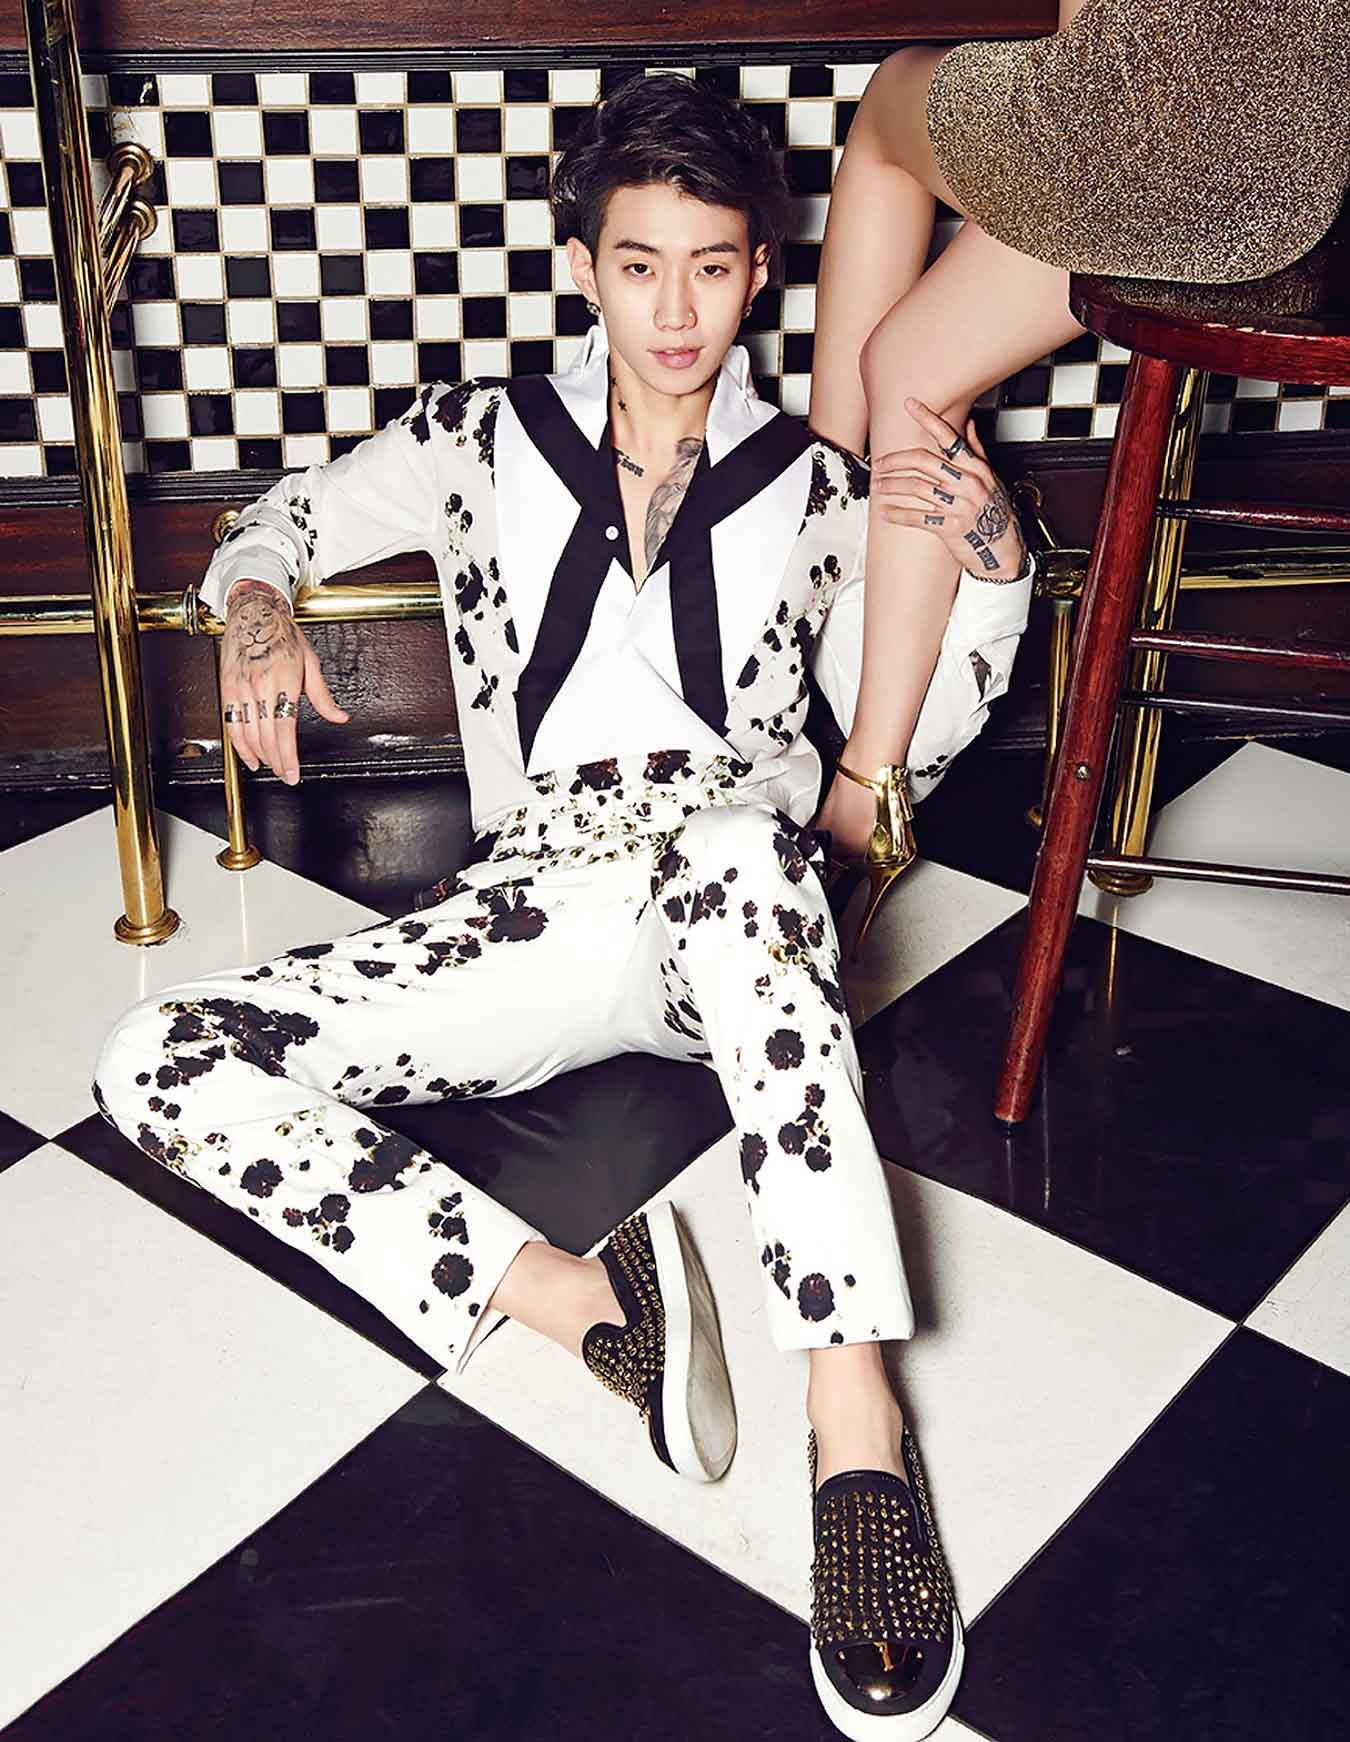 High Fashion Magazines: Jay Park Goes High Fashion For InStyle Korea Photo Shoot